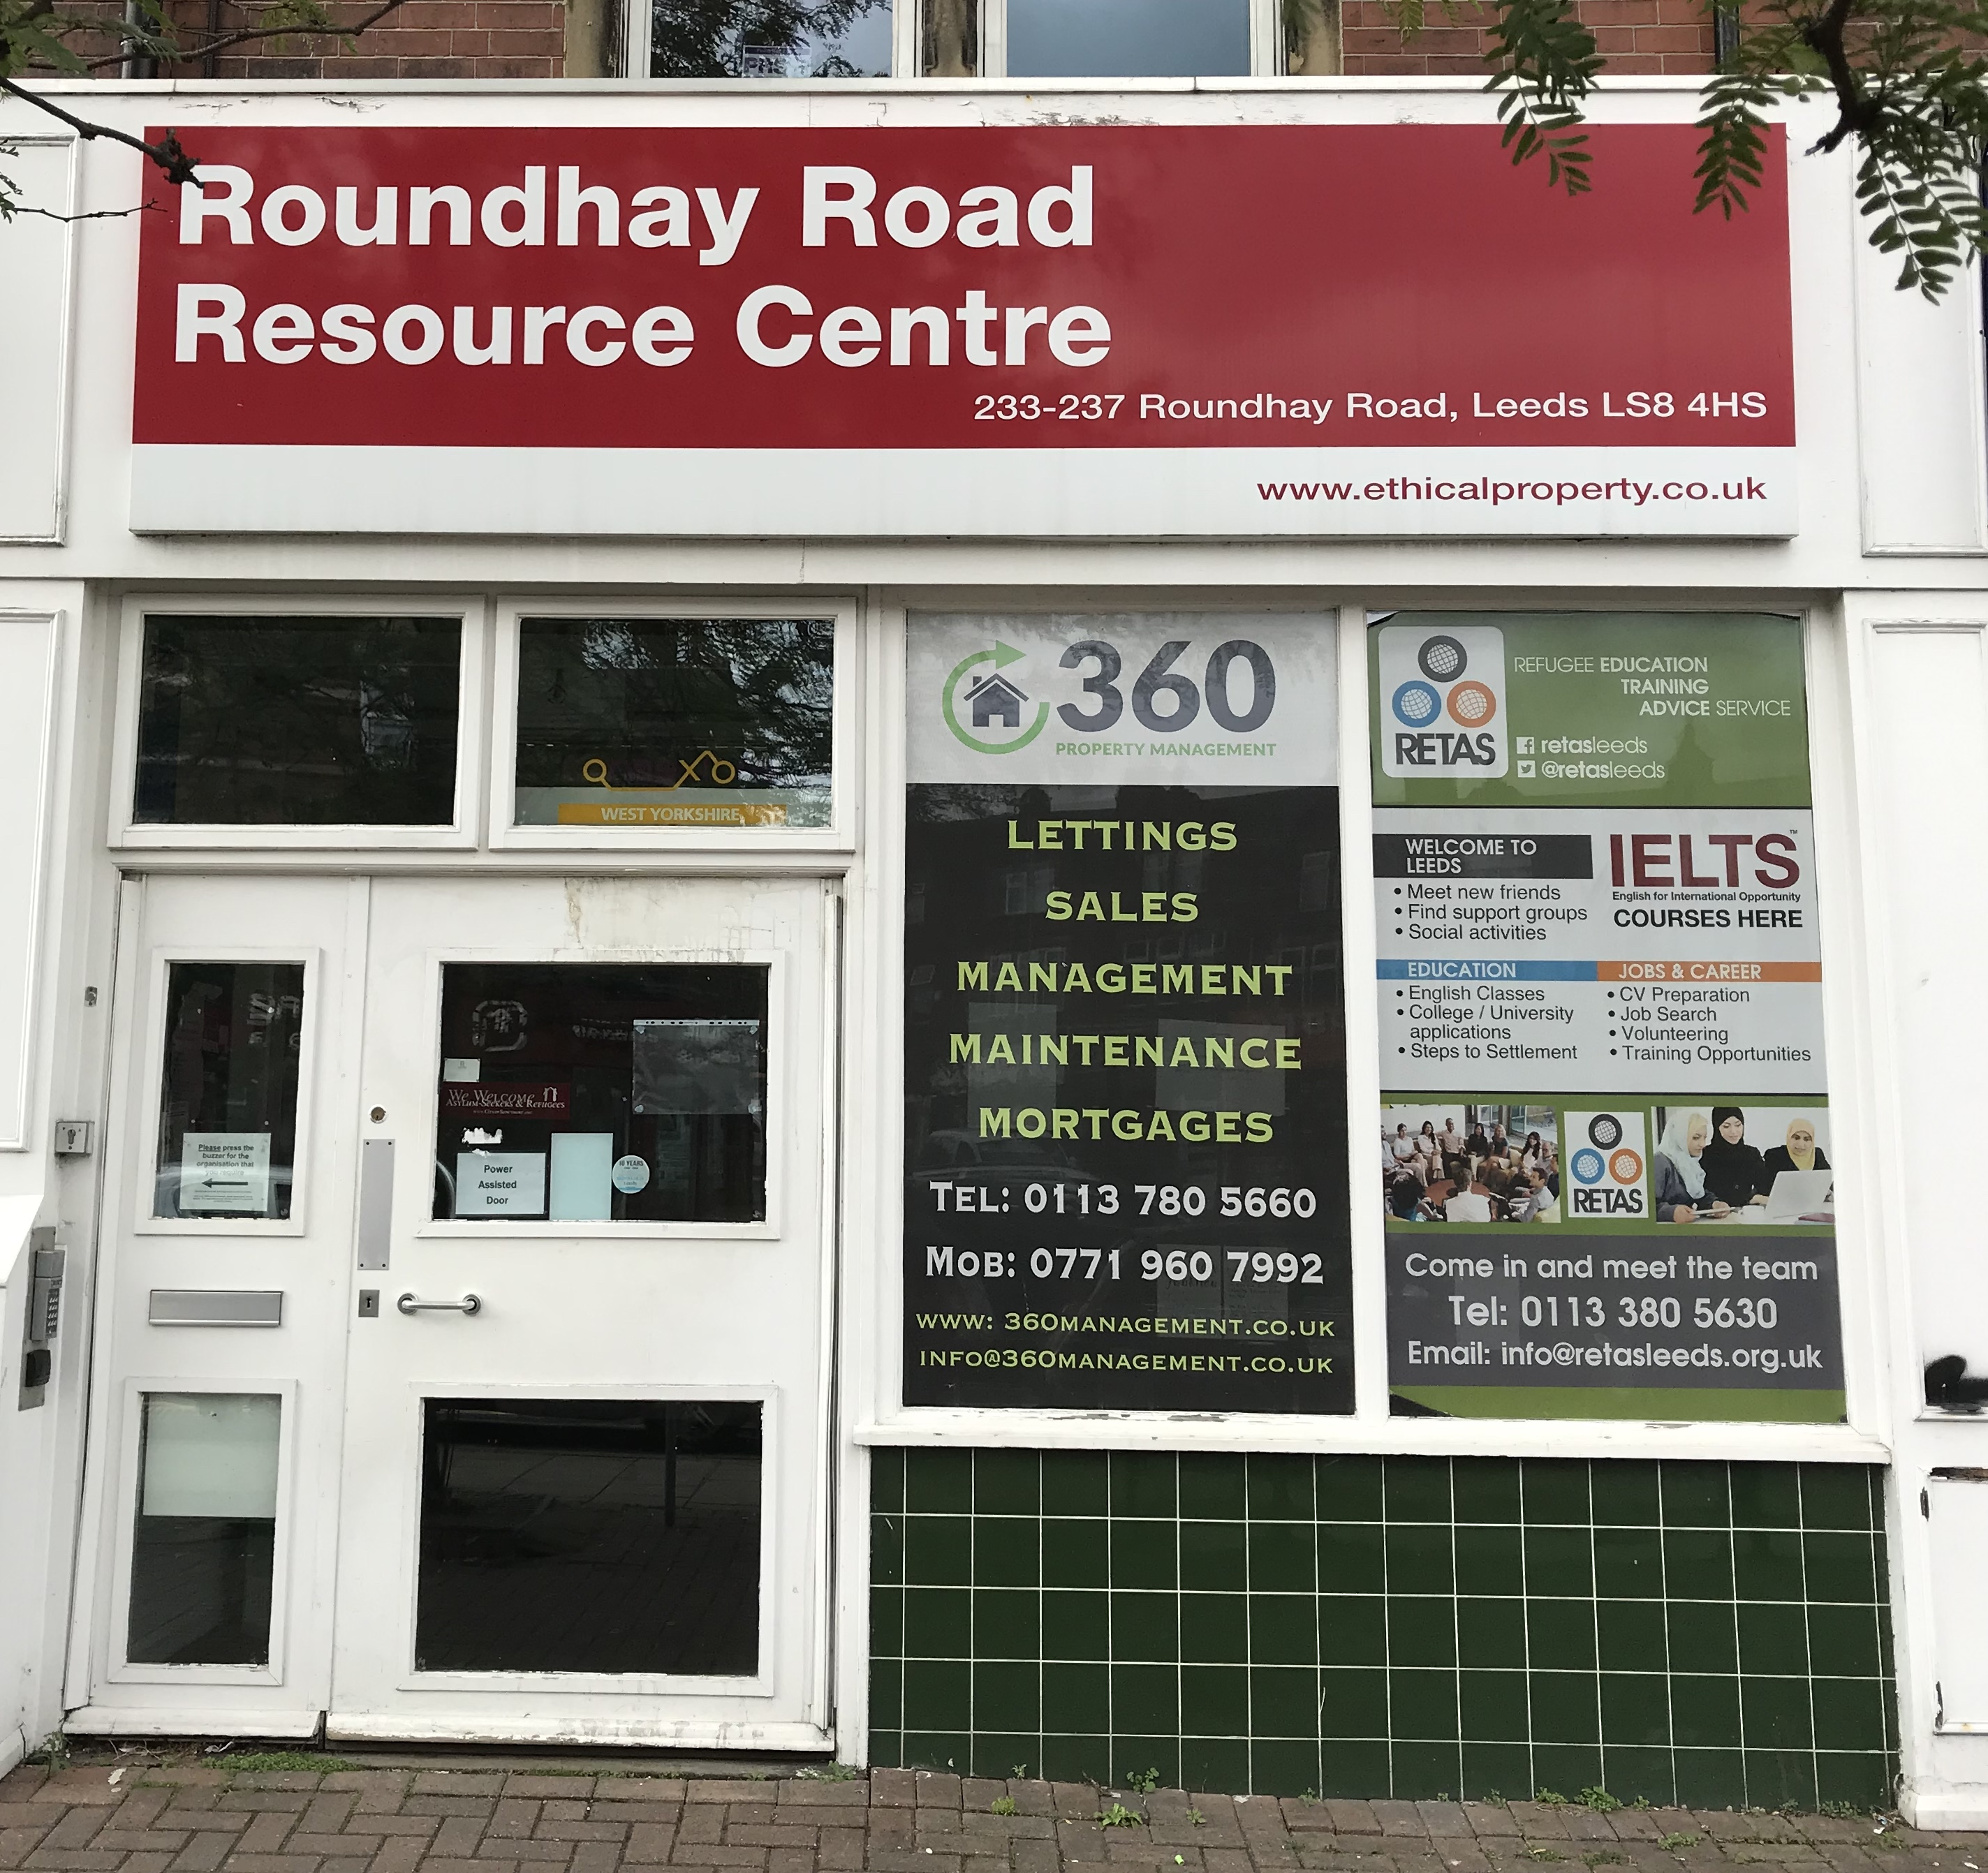 Roundhay Road Resources Centre